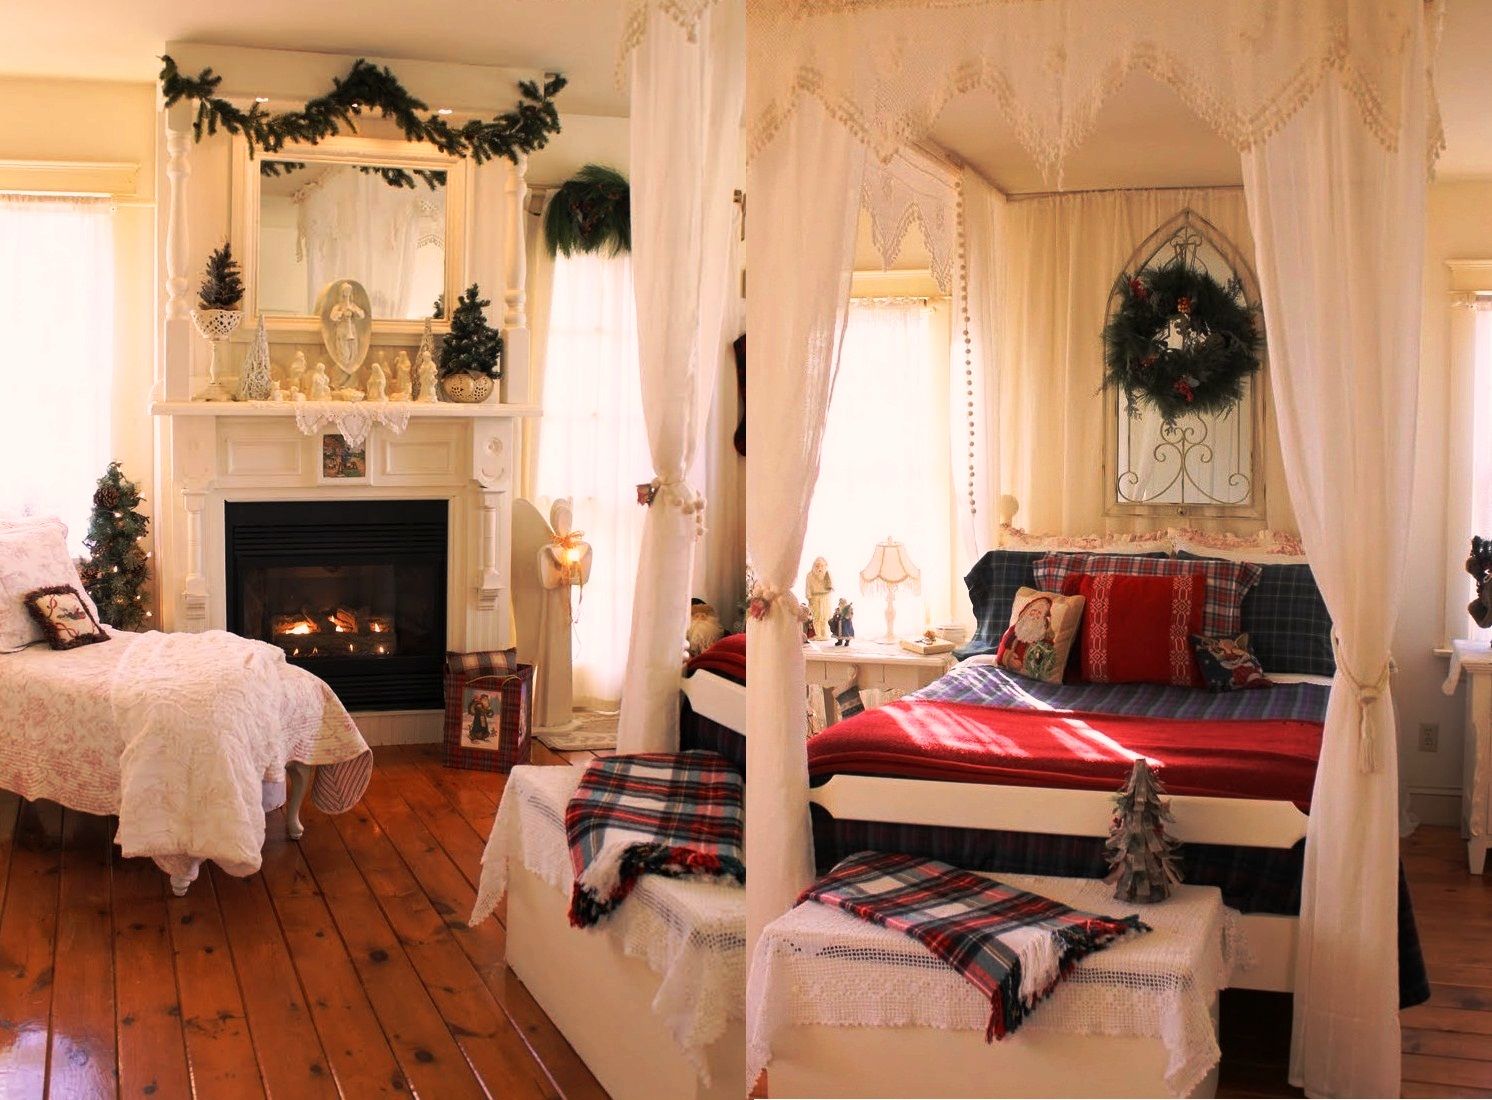 30 christmas bedroom decorations ideas - Christmas Bedroom Decor Ideas